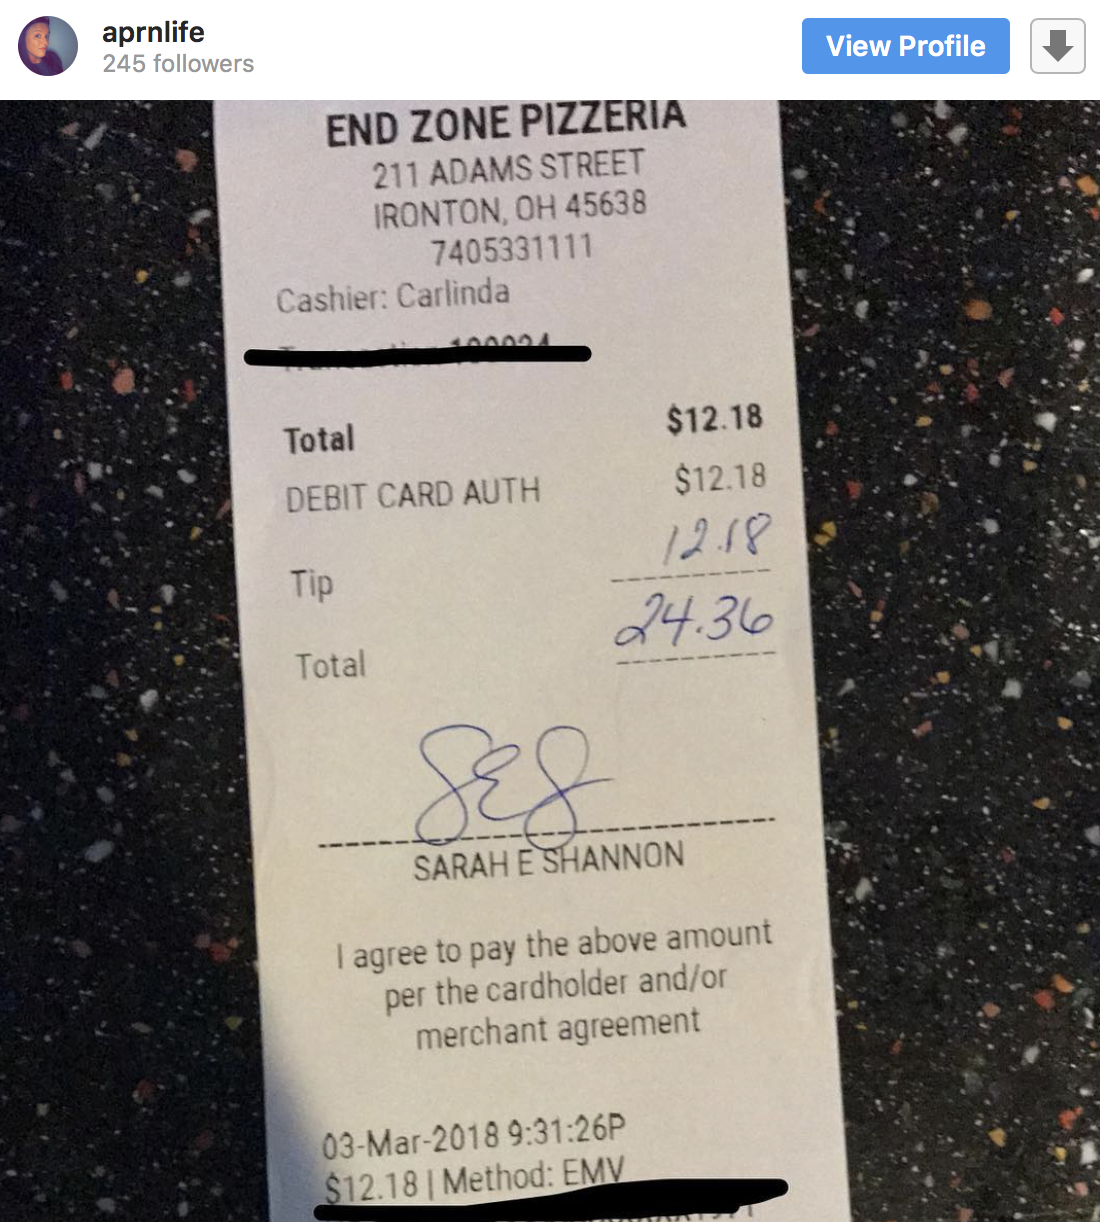 #TipTheBill Challenge Encourages Diners To Tip The Amount of the Bill